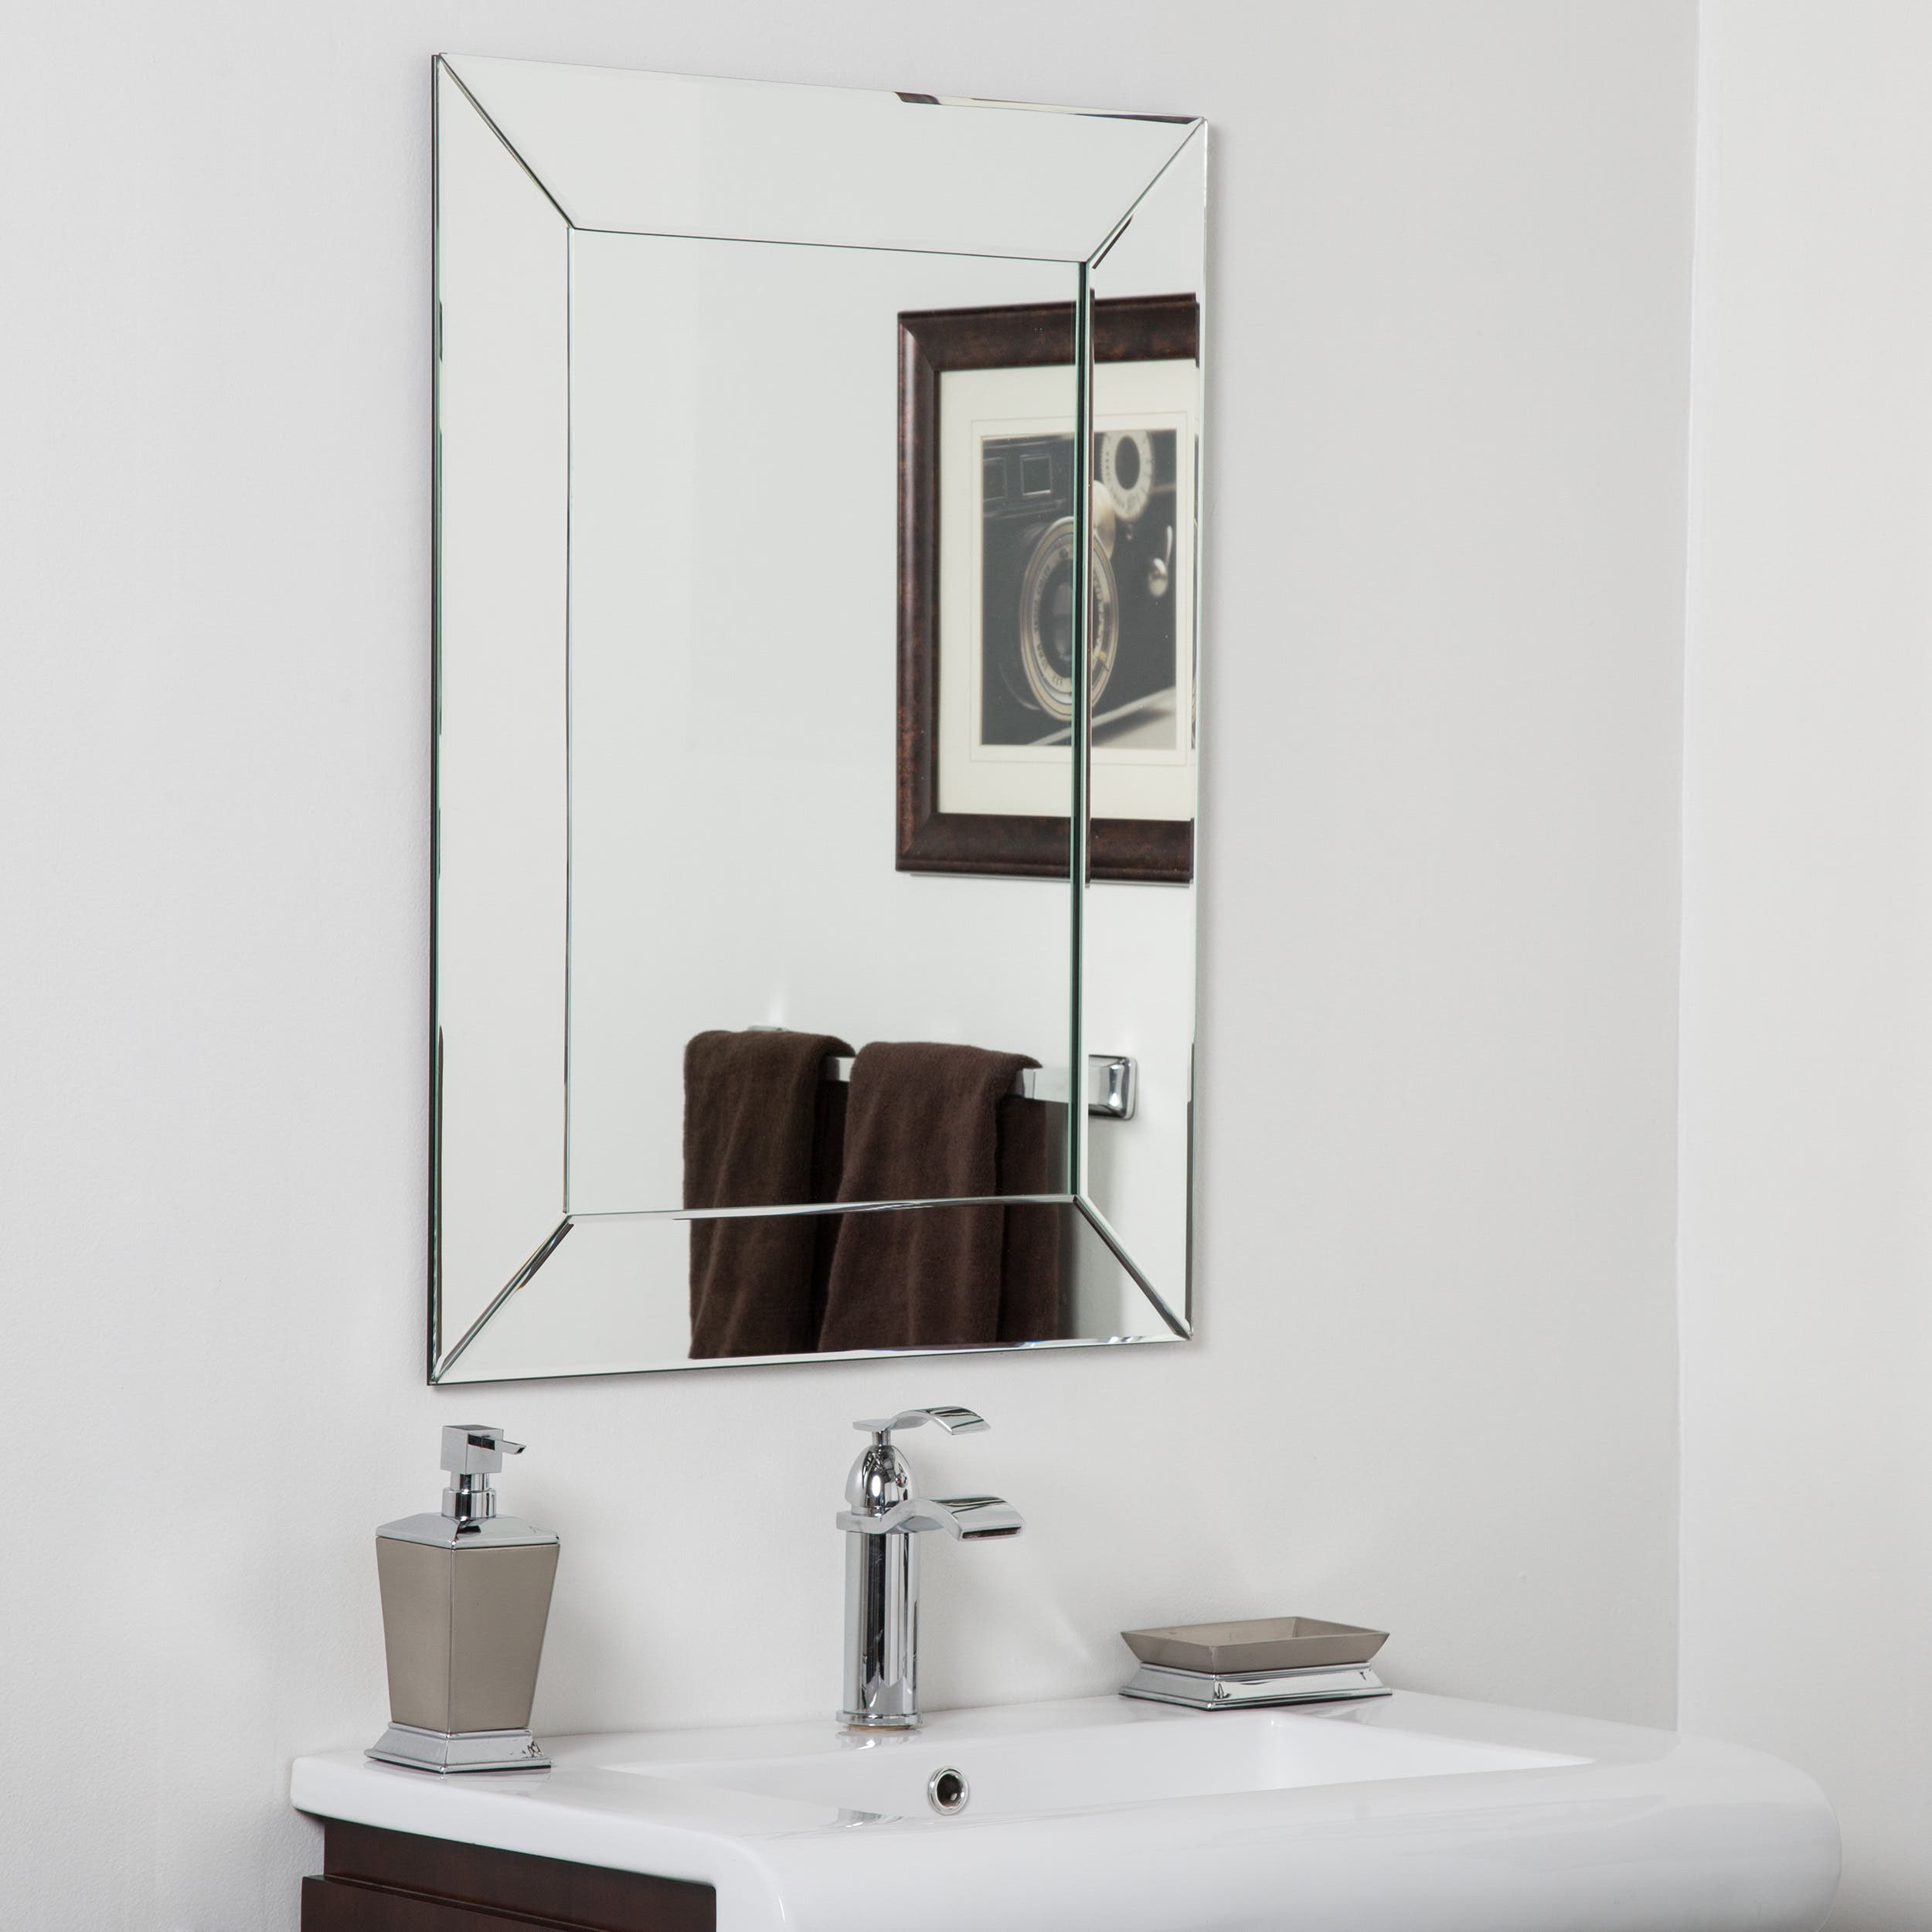 Best Place To Buy Bathroom Mirrors: Buy Mirrors Online At Overstock.com